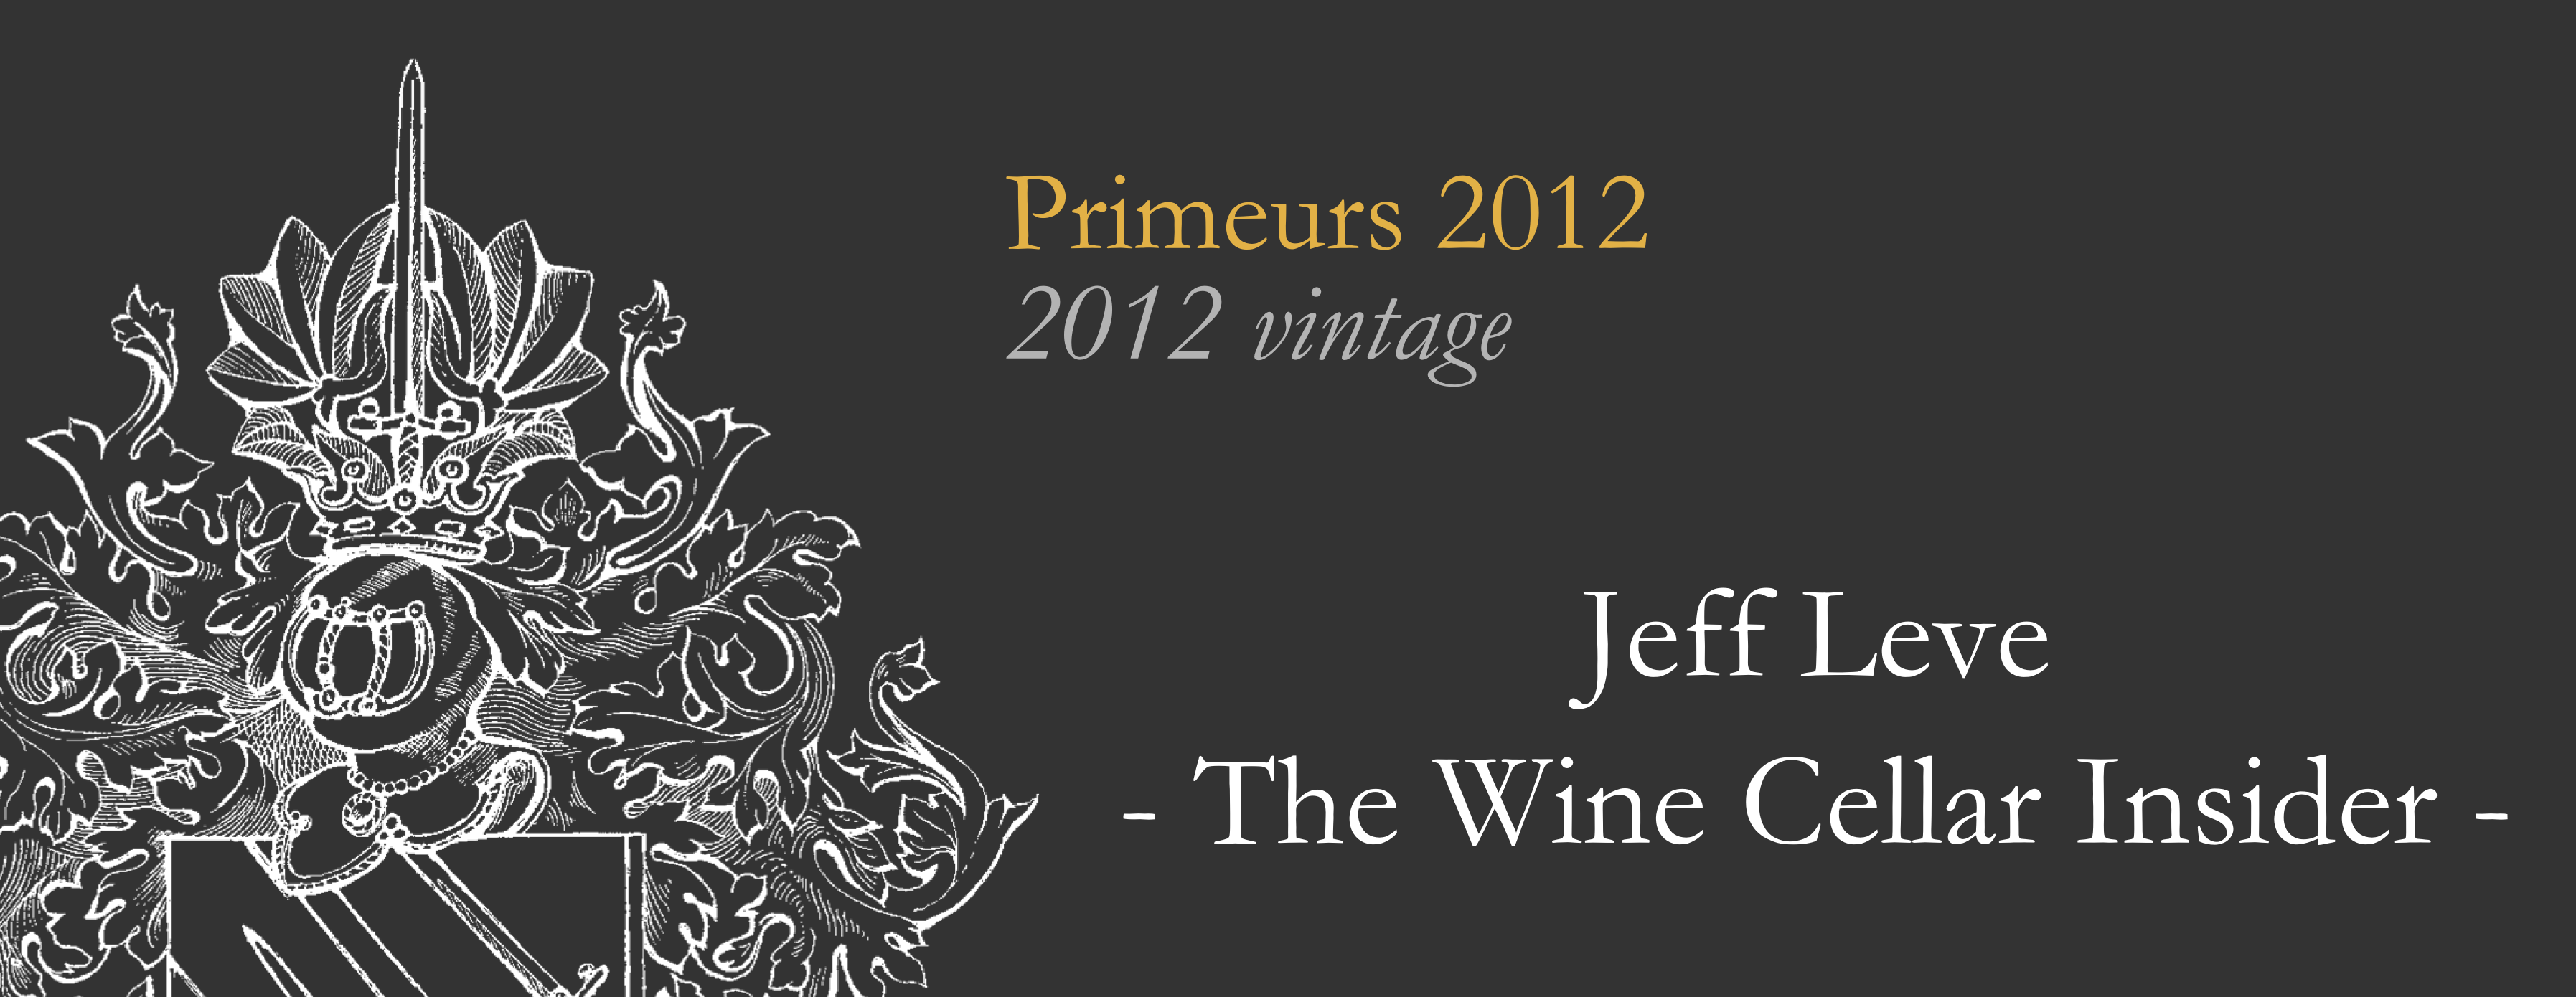 Last Friday Jeff Leve from The Wine Cellar Insider has published his tasting notes about Château Fleur Cardinale 2012   sc 1 st  Château Fleur Cardinale & Primeurs 2012 u2013 Jeff Leve | Château Fleur Cardinale